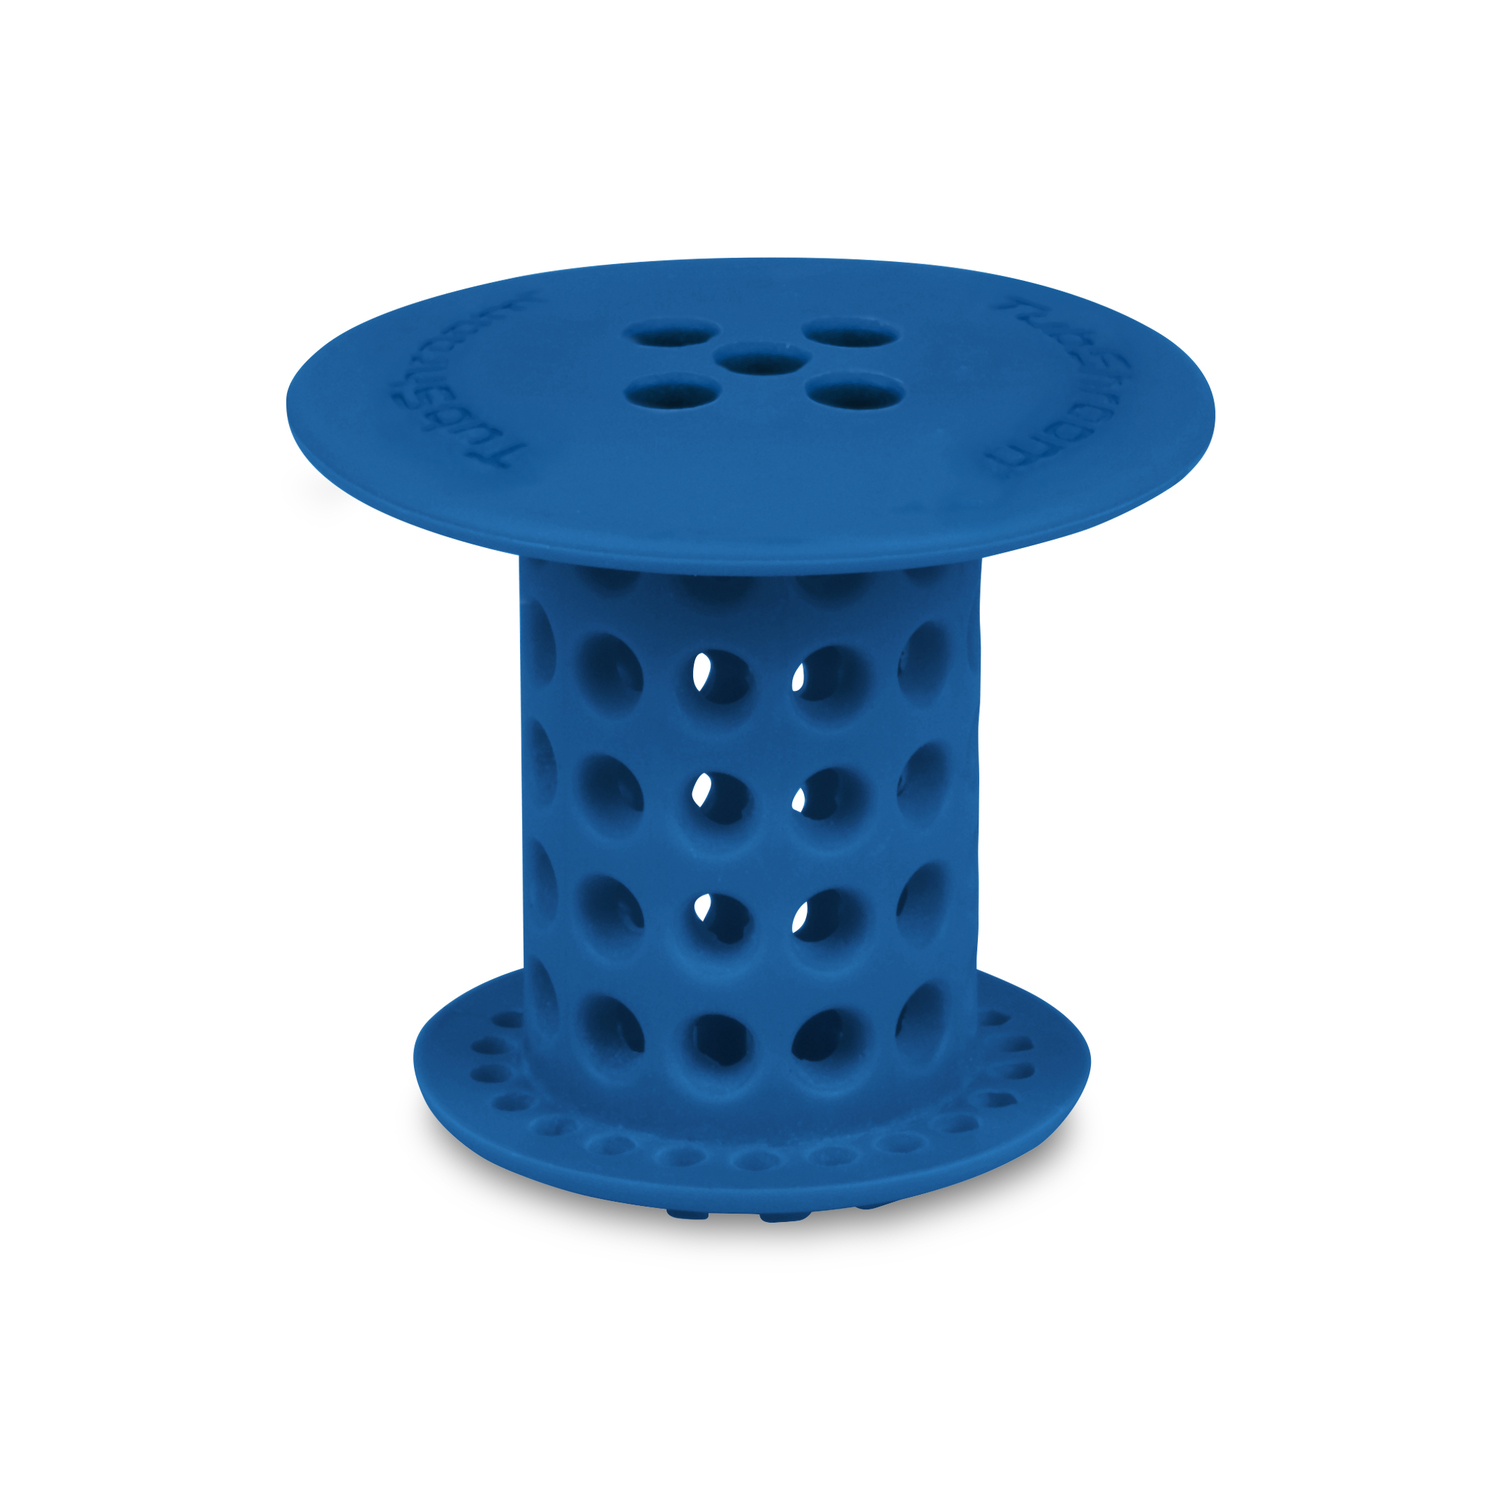 Tub Shroom 1-1/2 in. Blue Silicone Round Drain Hair Catcher - Ace ...